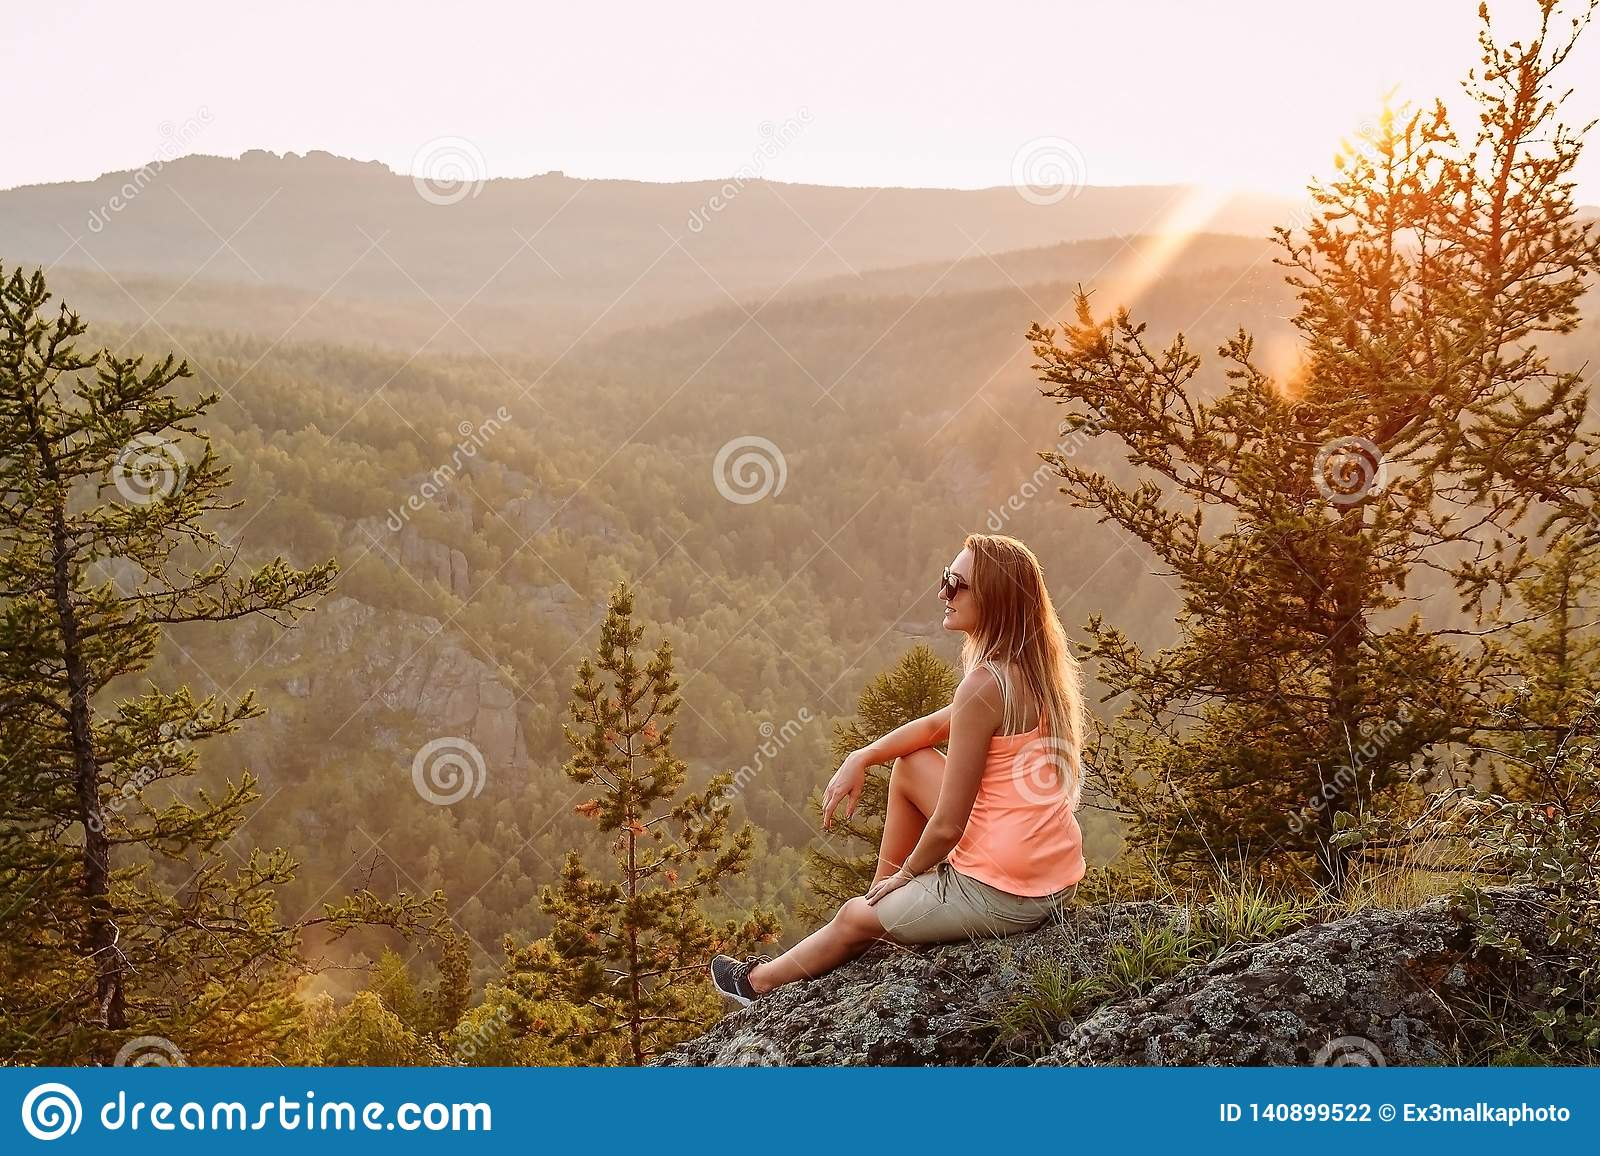 Blonde slender woman tourist in an orange t-shirt in the mountains in the summer at sunset. beautiful landscape of the Ural